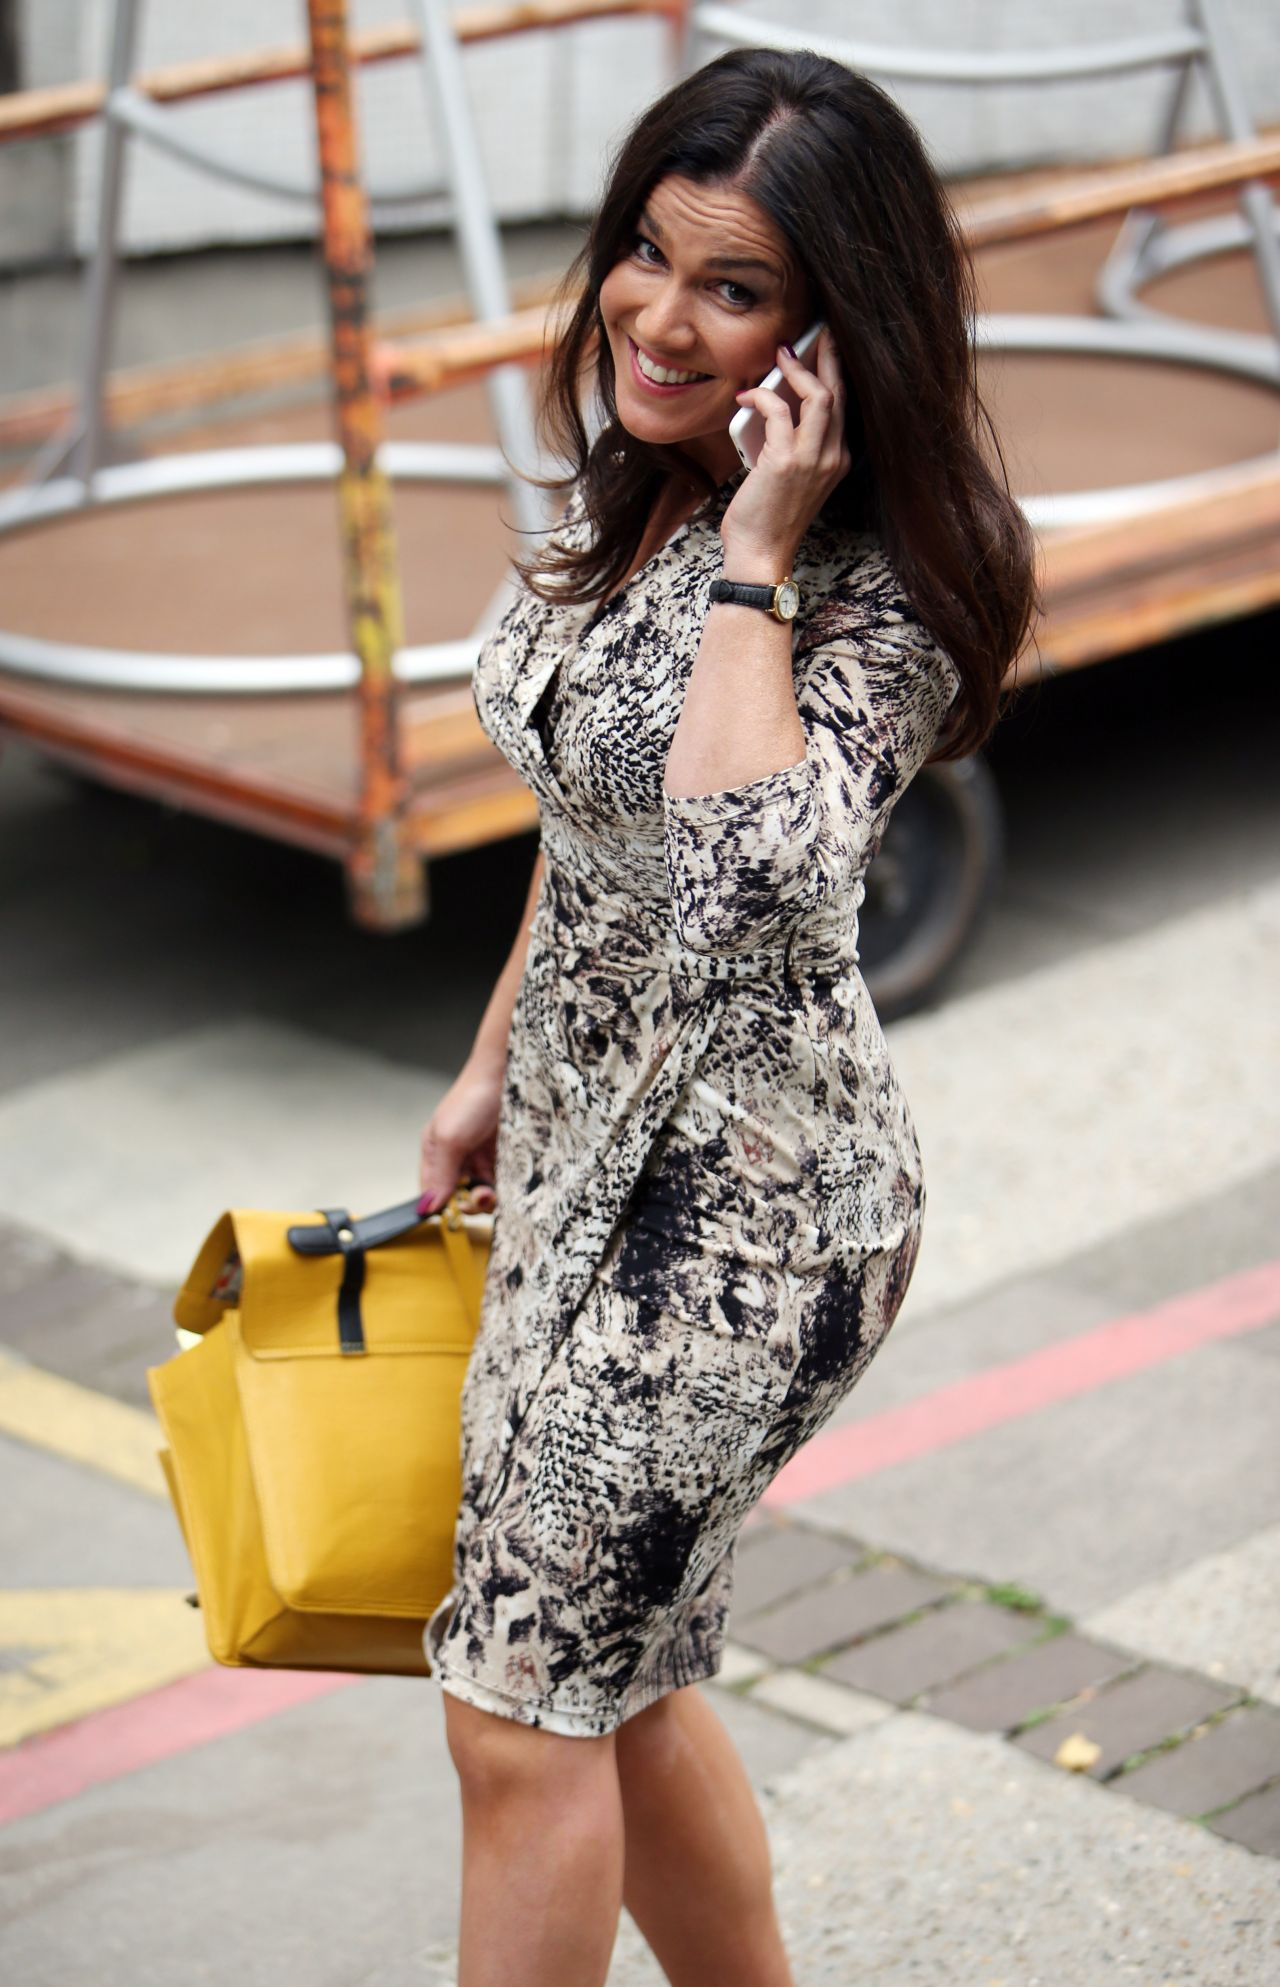 Susanna Reid - Leaving the London Studios - September 2014